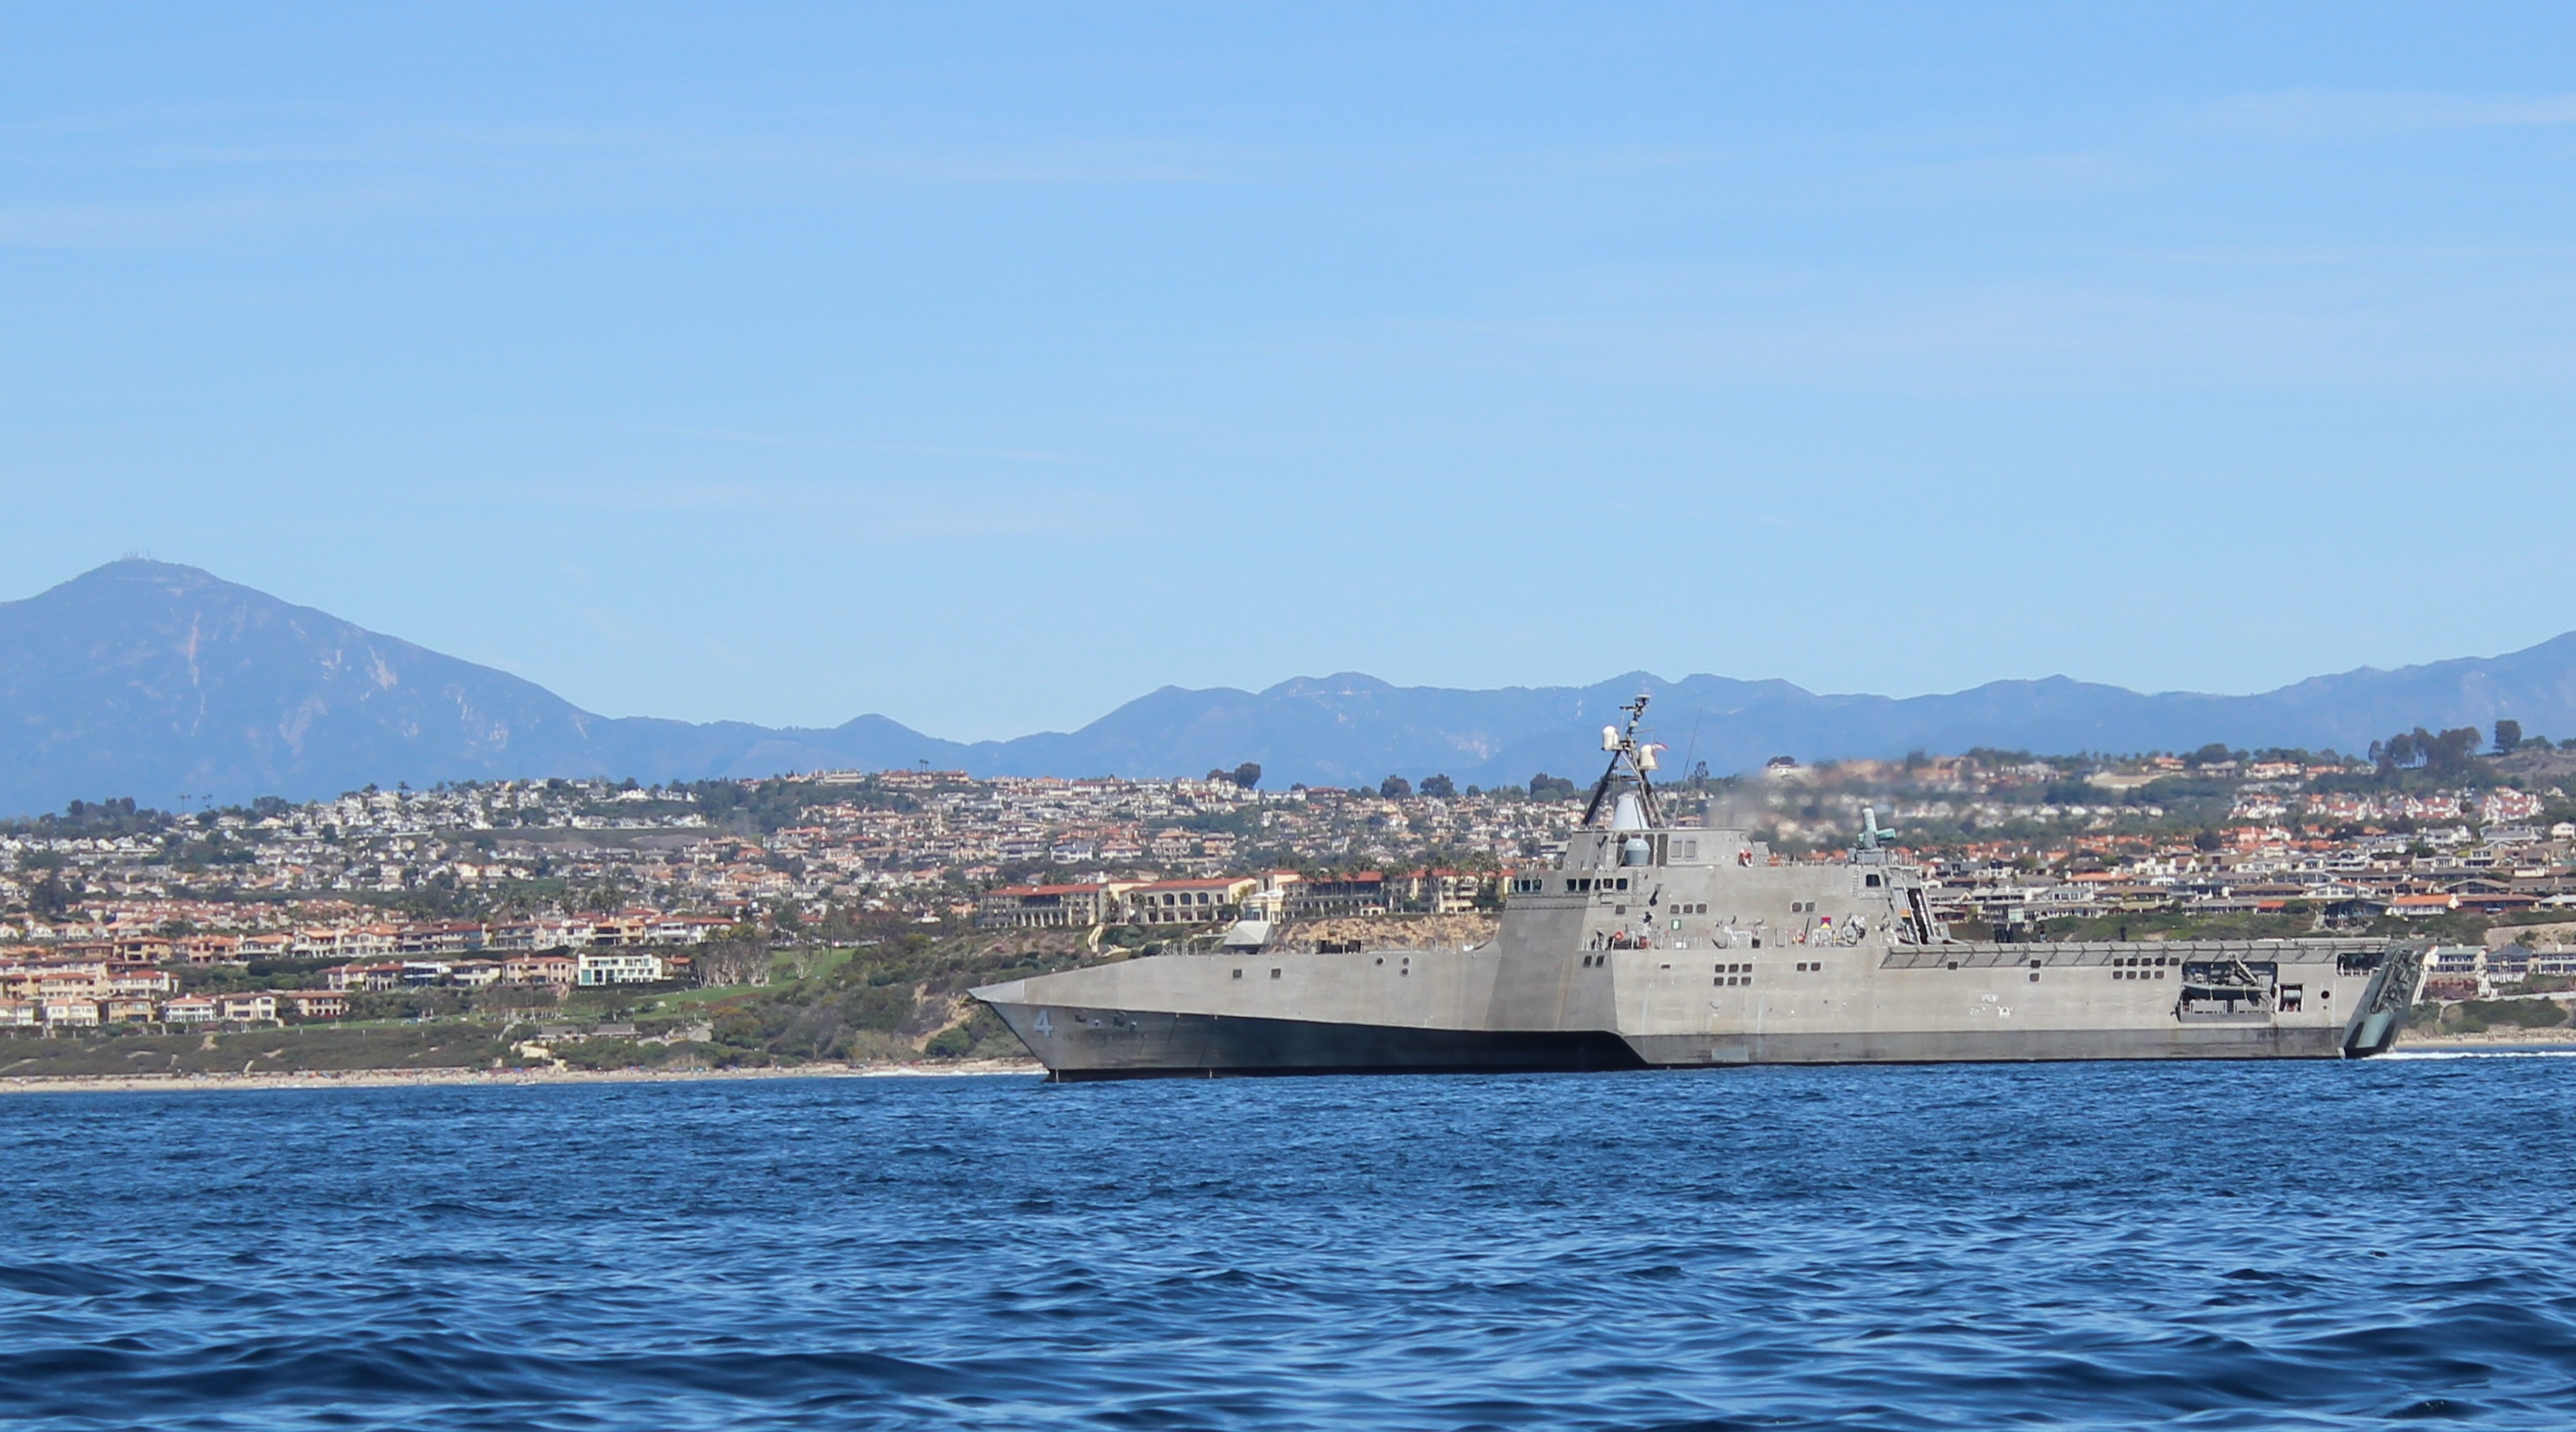 USS Coronado off the south Orange County coastline. Photo by Shannon O'Neill